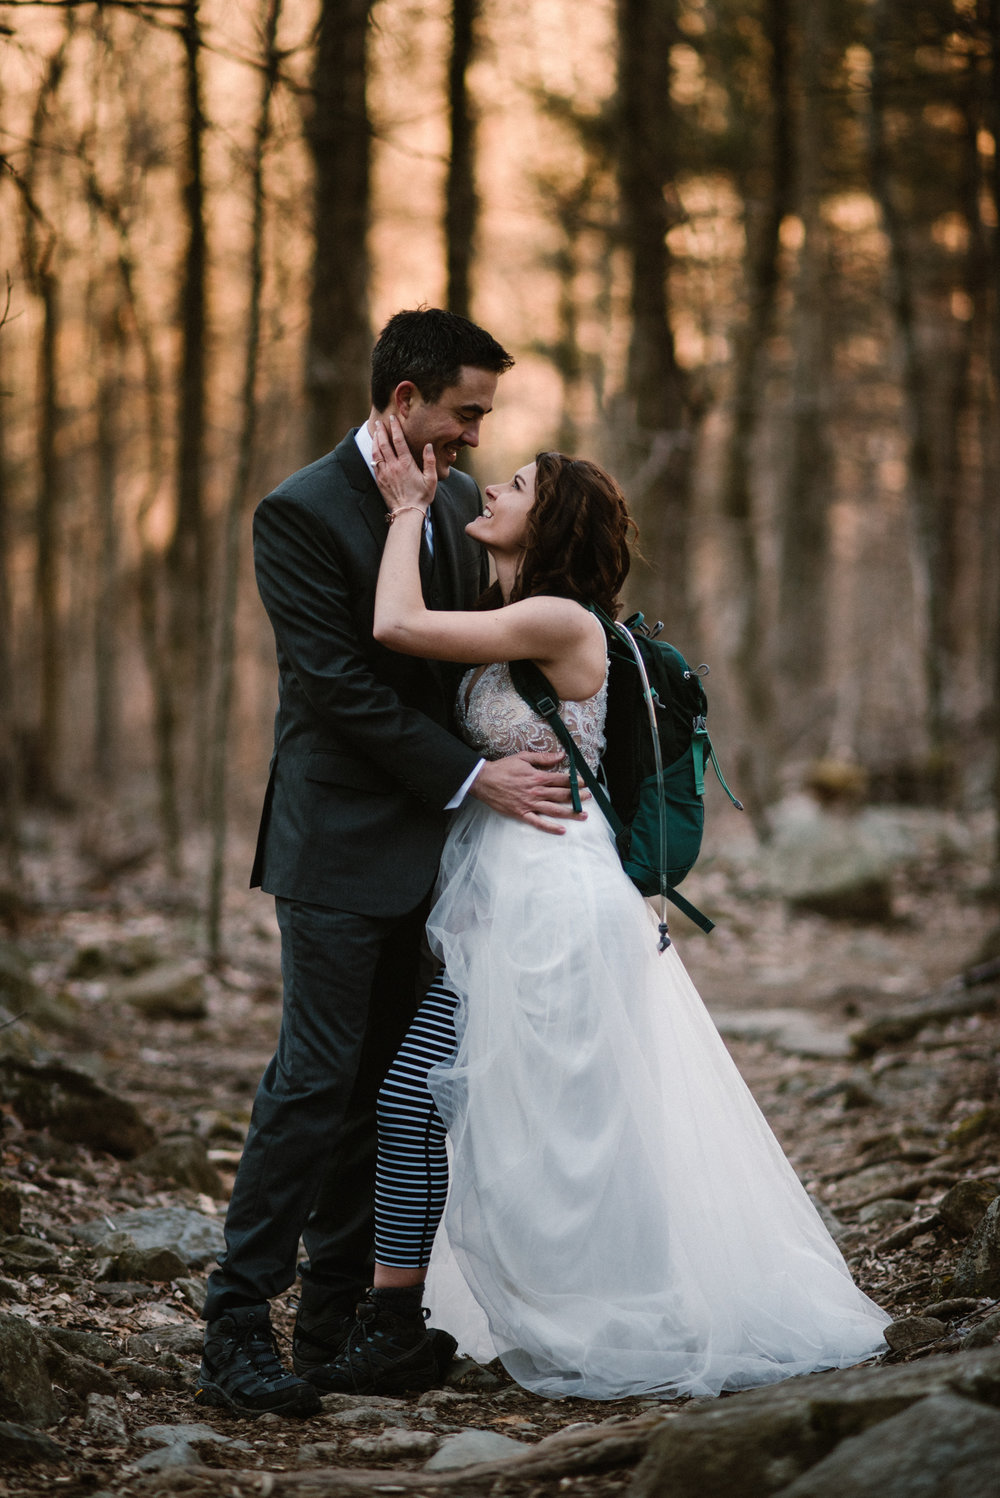 Stephanie and Steve - Shenandoah National Park Elopement - Sunrise Hiking Elopement - Adventurous Elopement - Virginia Elopement Photographer - Shenandoah national Park Wedding Photographer - White Sails Creative_42.jpg